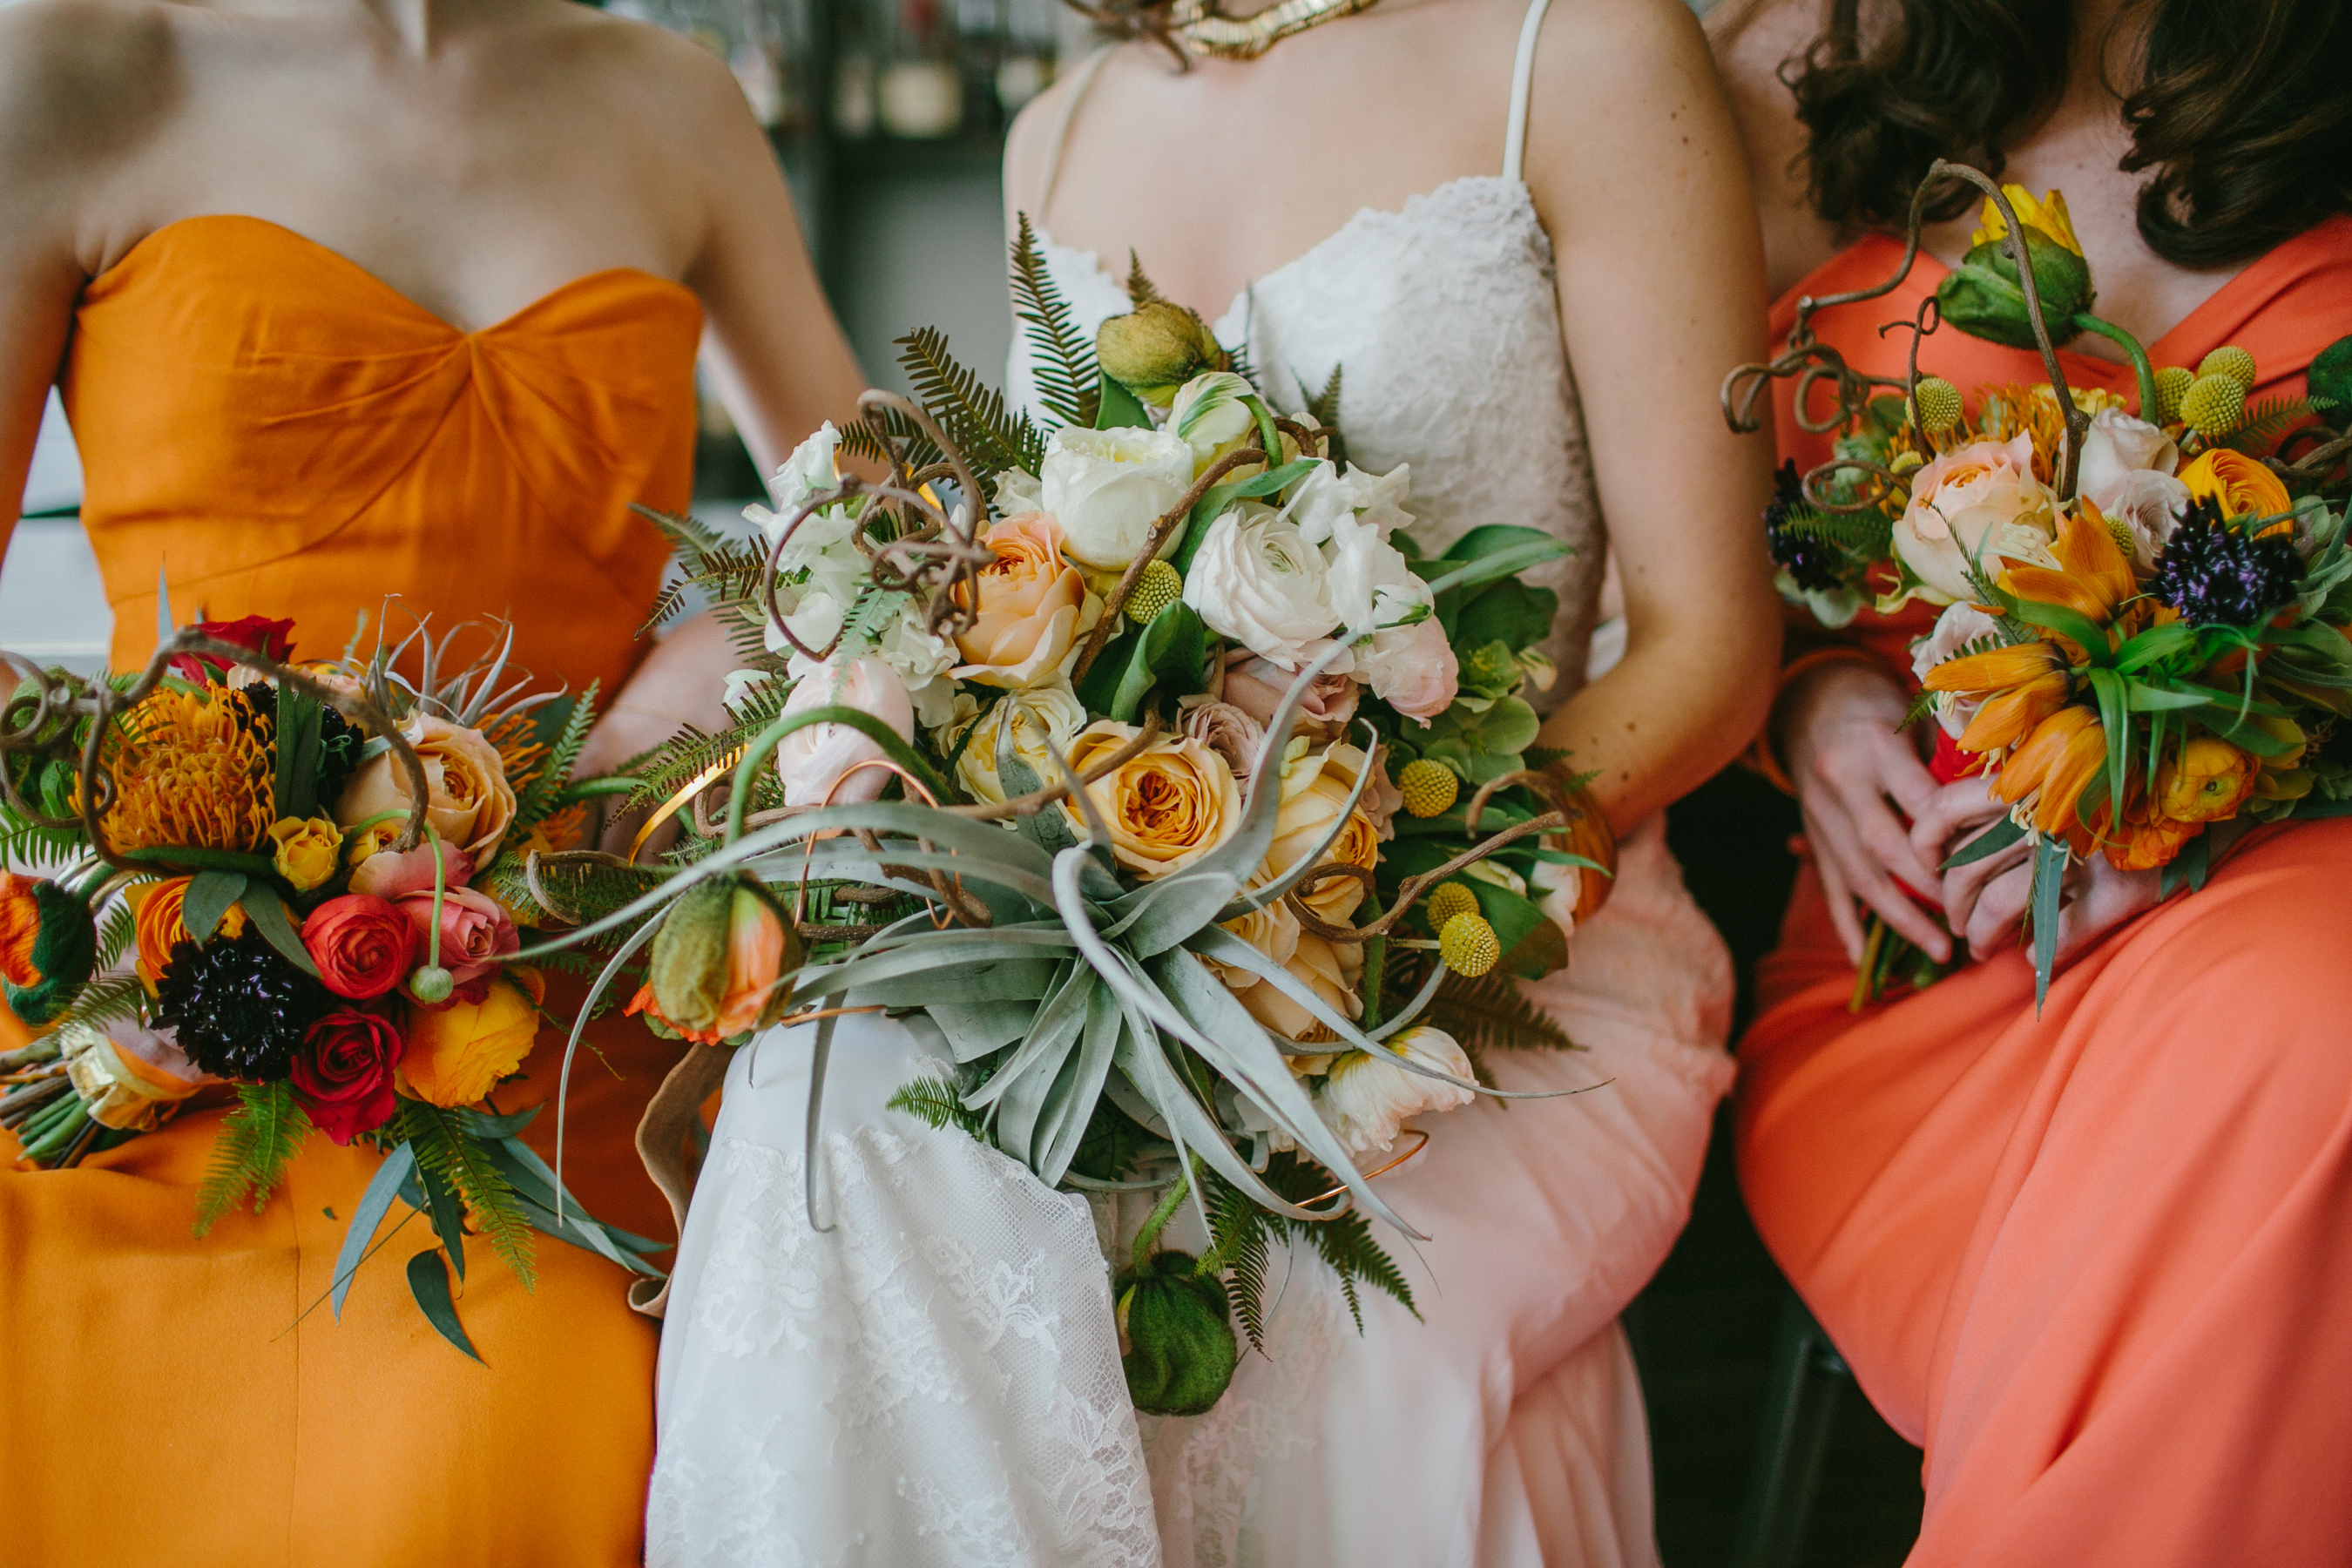 Fall in love! Wedding planner ideas for your perfect Autumn wedding.